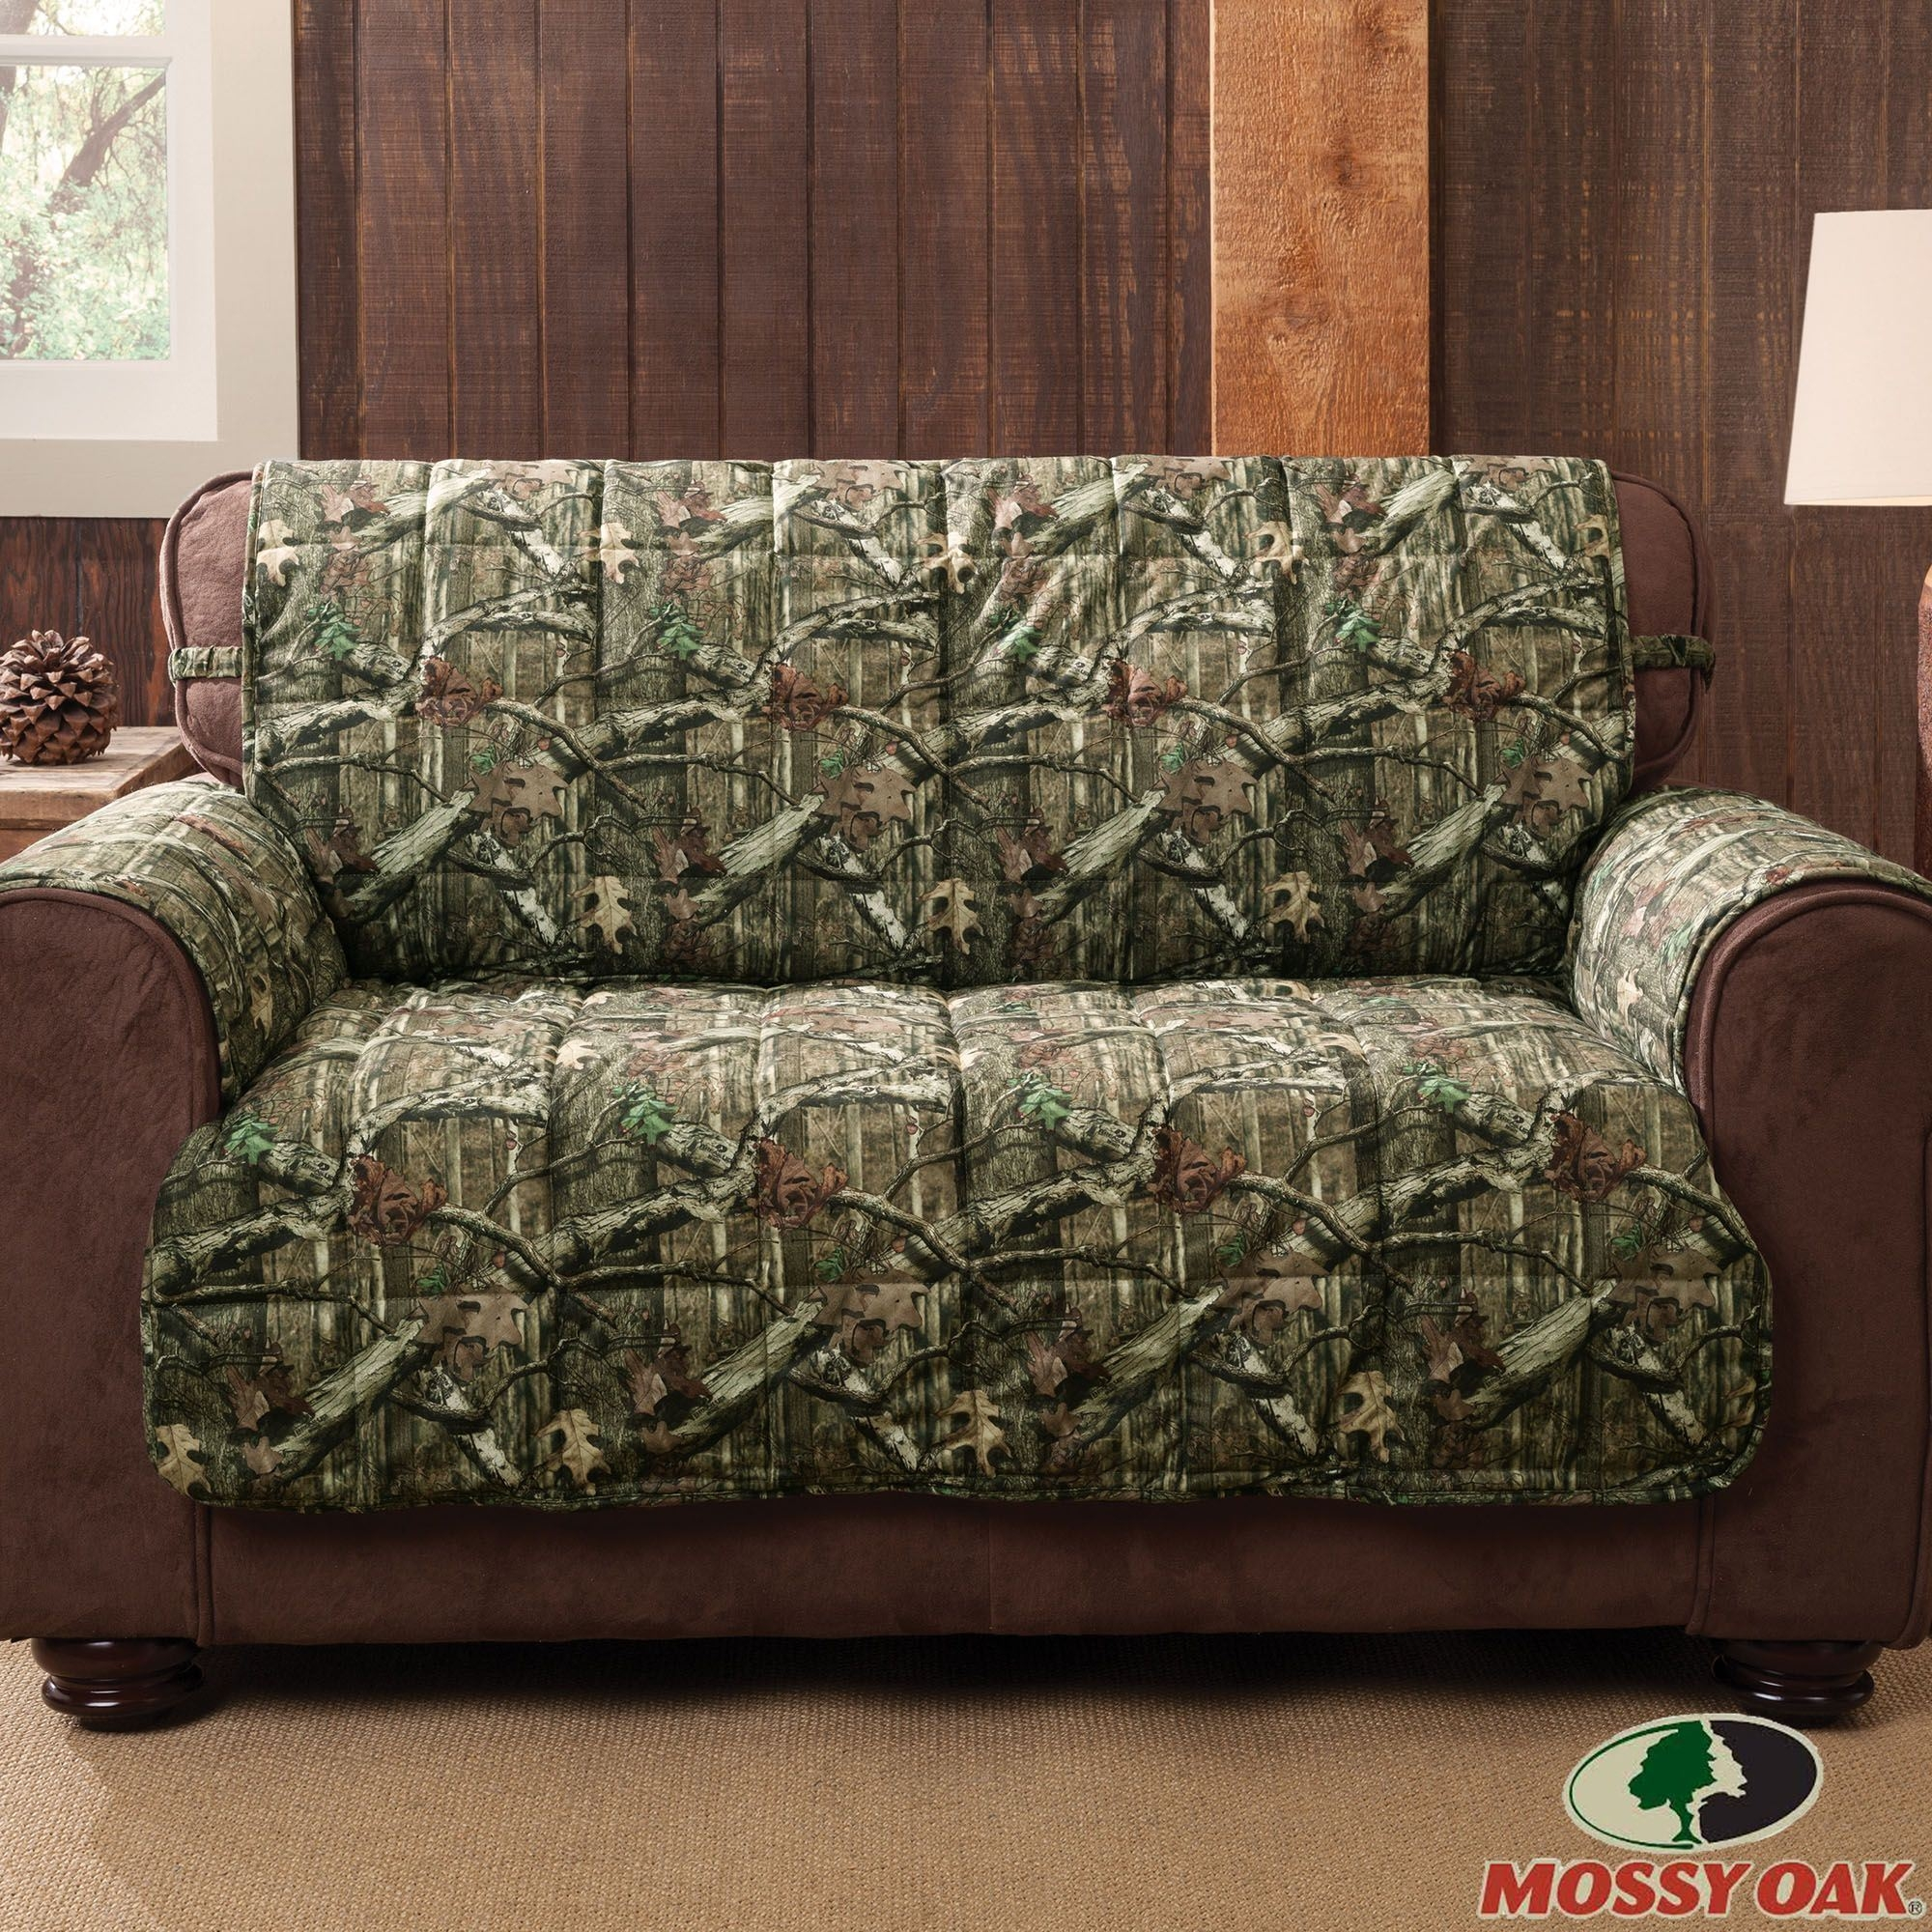 Mossy Oak Break Up Infinity Camo Furniture Protectors Regarding Camo Sofa Cover (Image 9 of 15)